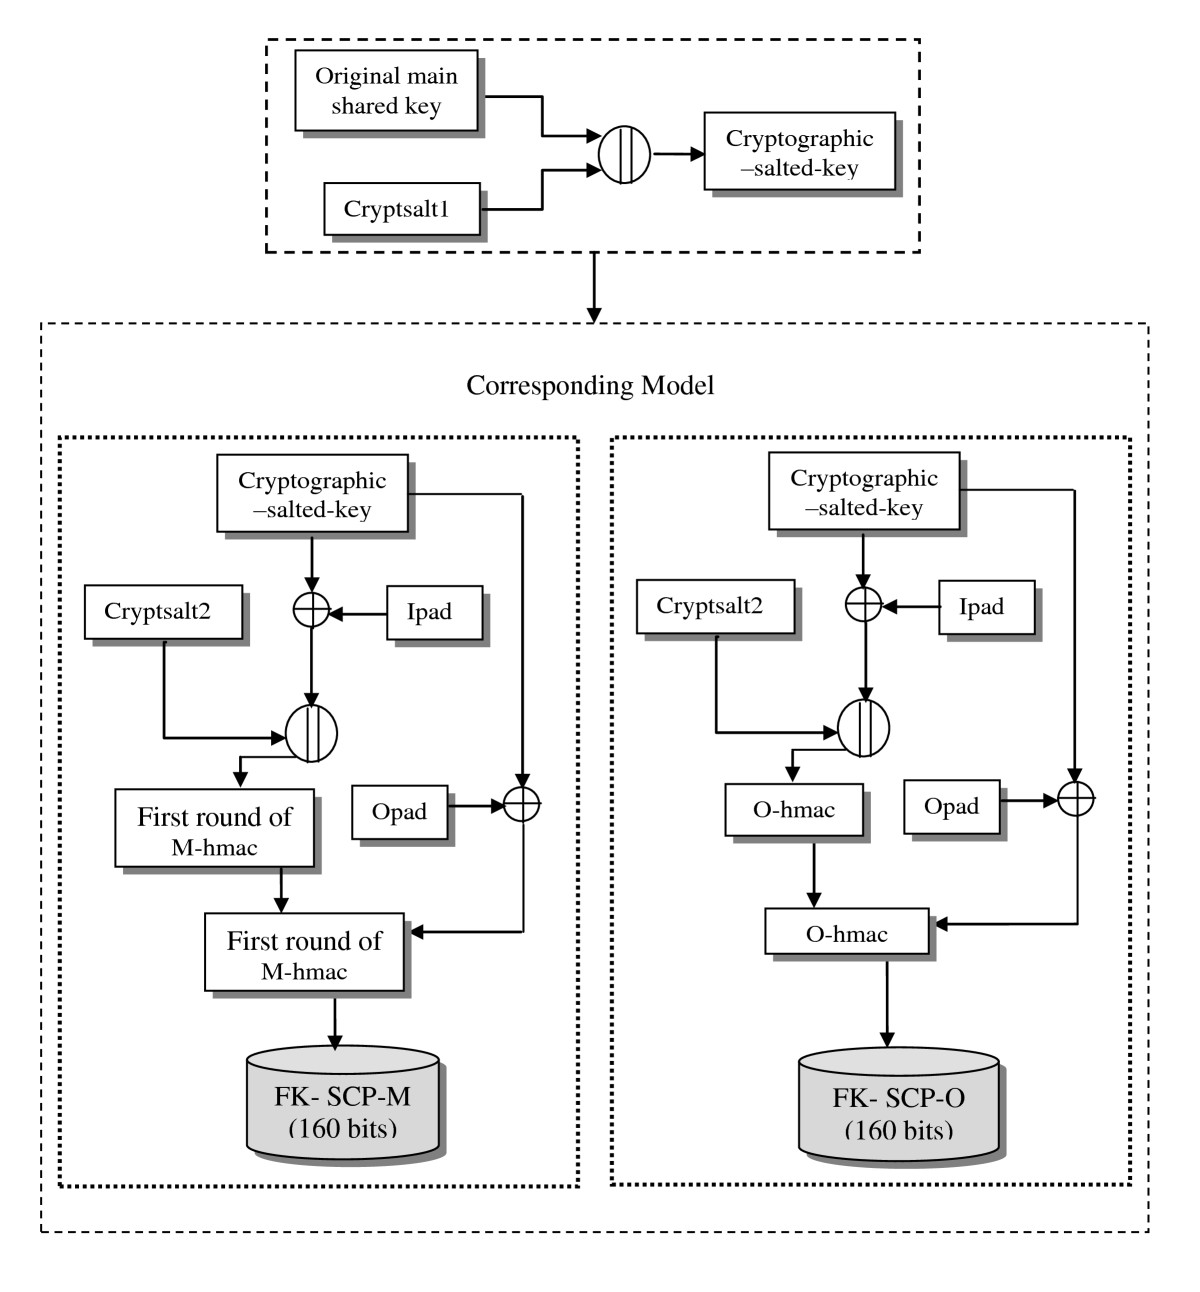 https://static-content.springer.com/image/art%3A10.1186%2F1687-417X-2011-4/MediaObjects/13635_2010_Article_7_Fig2_HTML.jpg